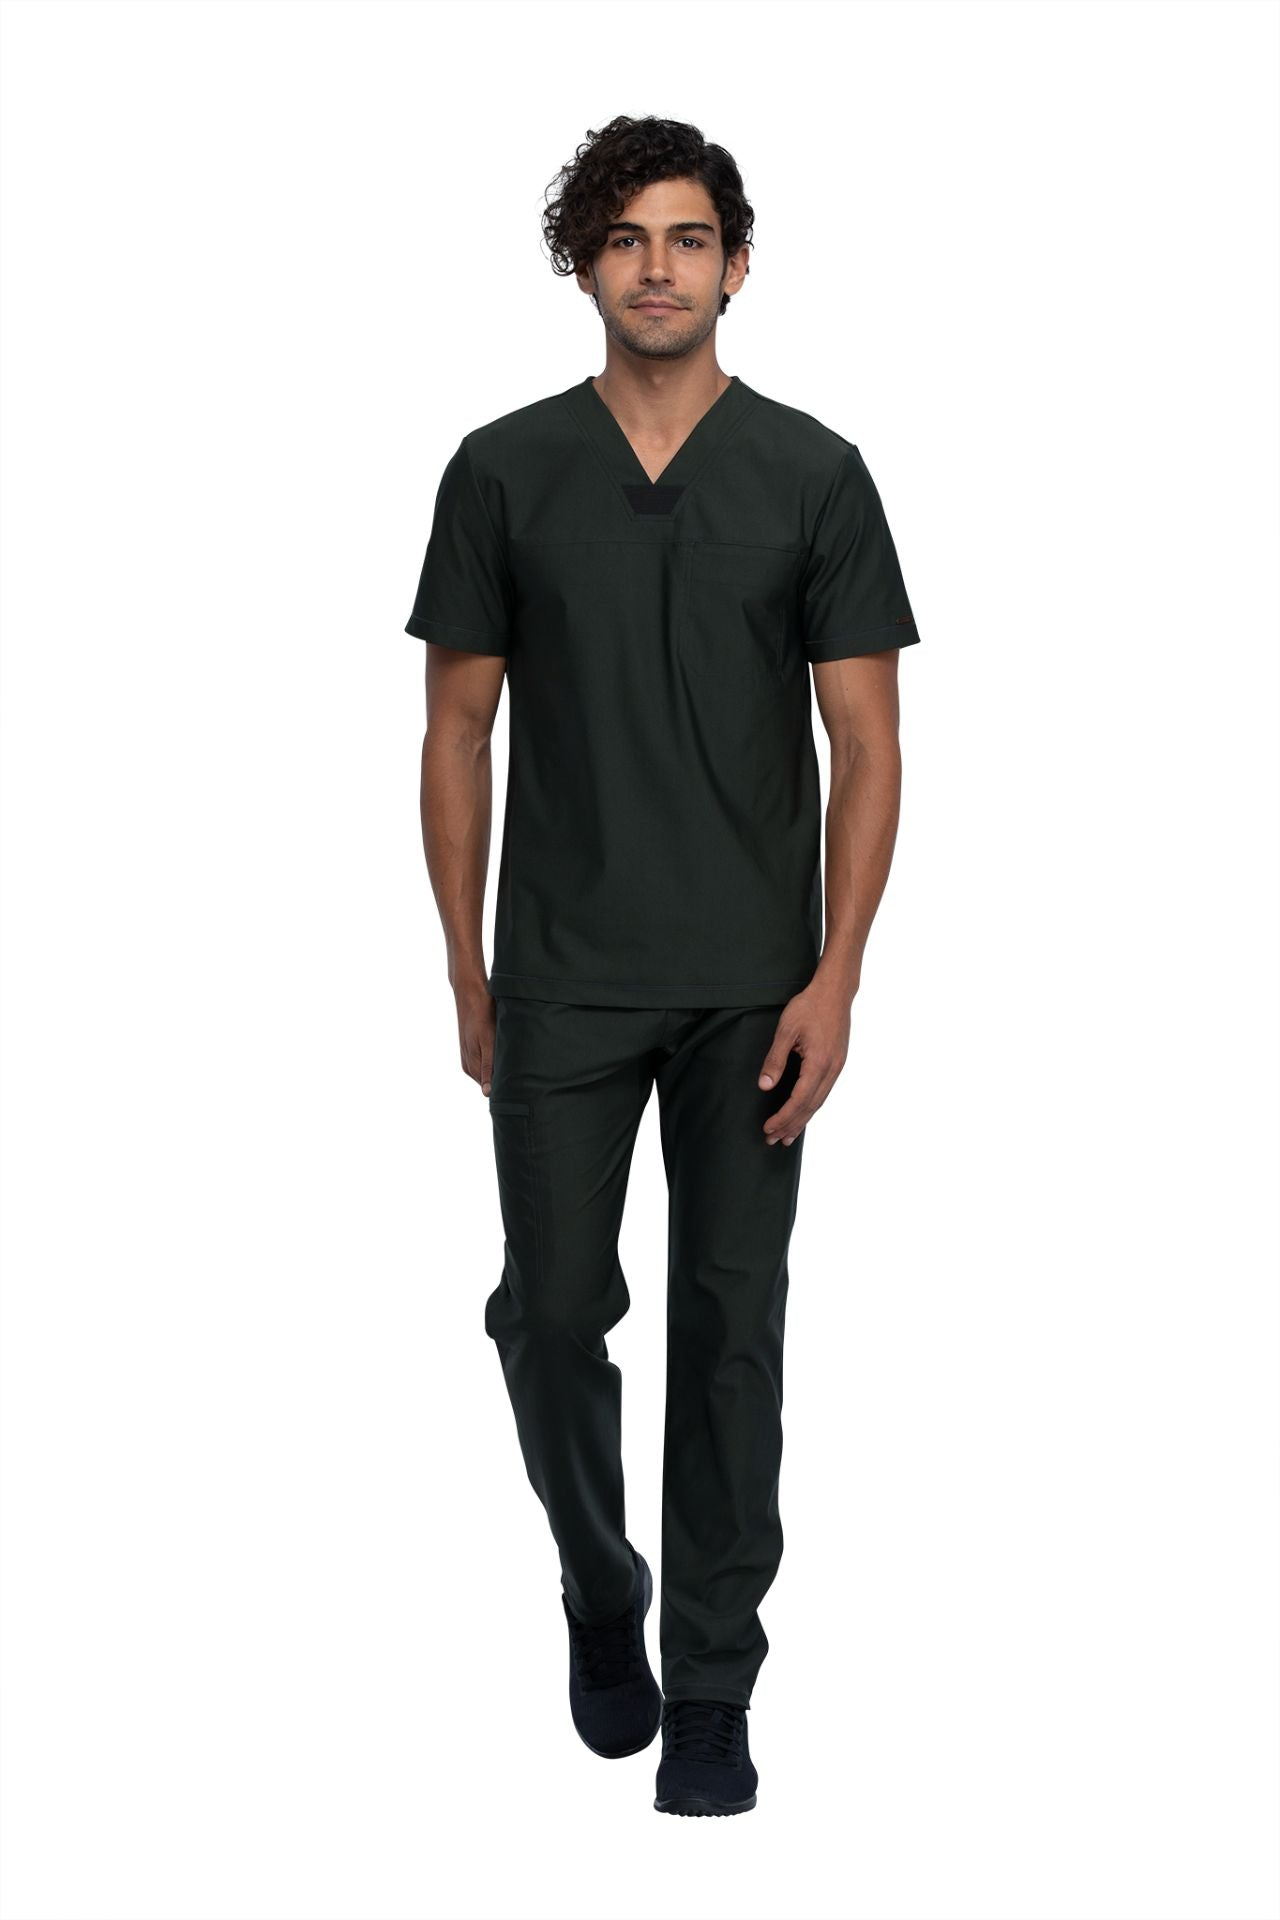 Cherokee Form CK885 Men's V-Neck Top